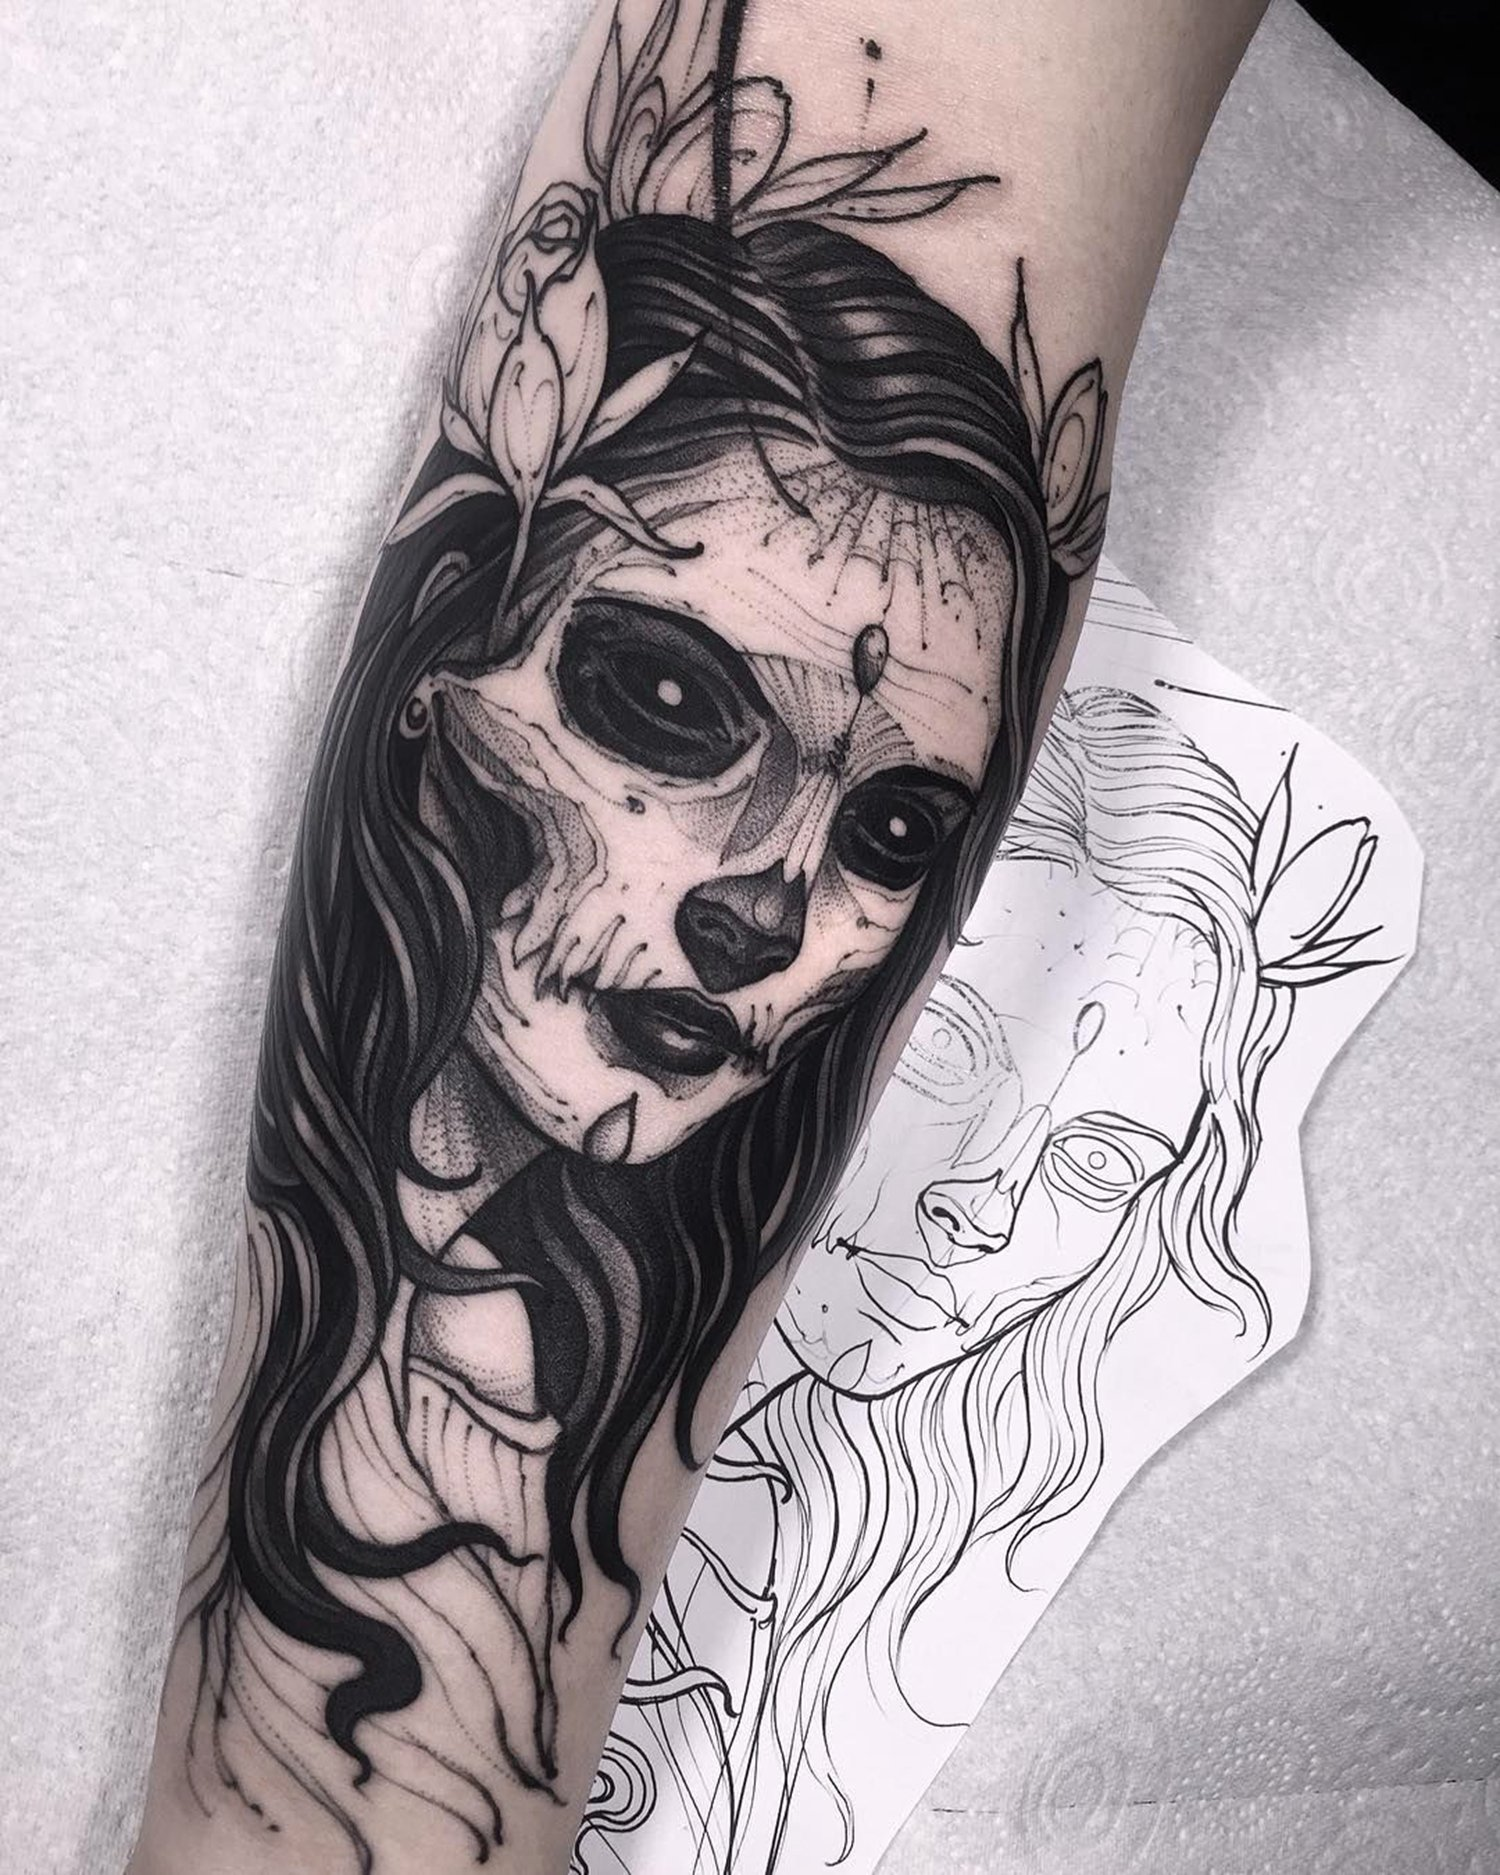 day of the dead girl tattoo, blackwork, sketch style